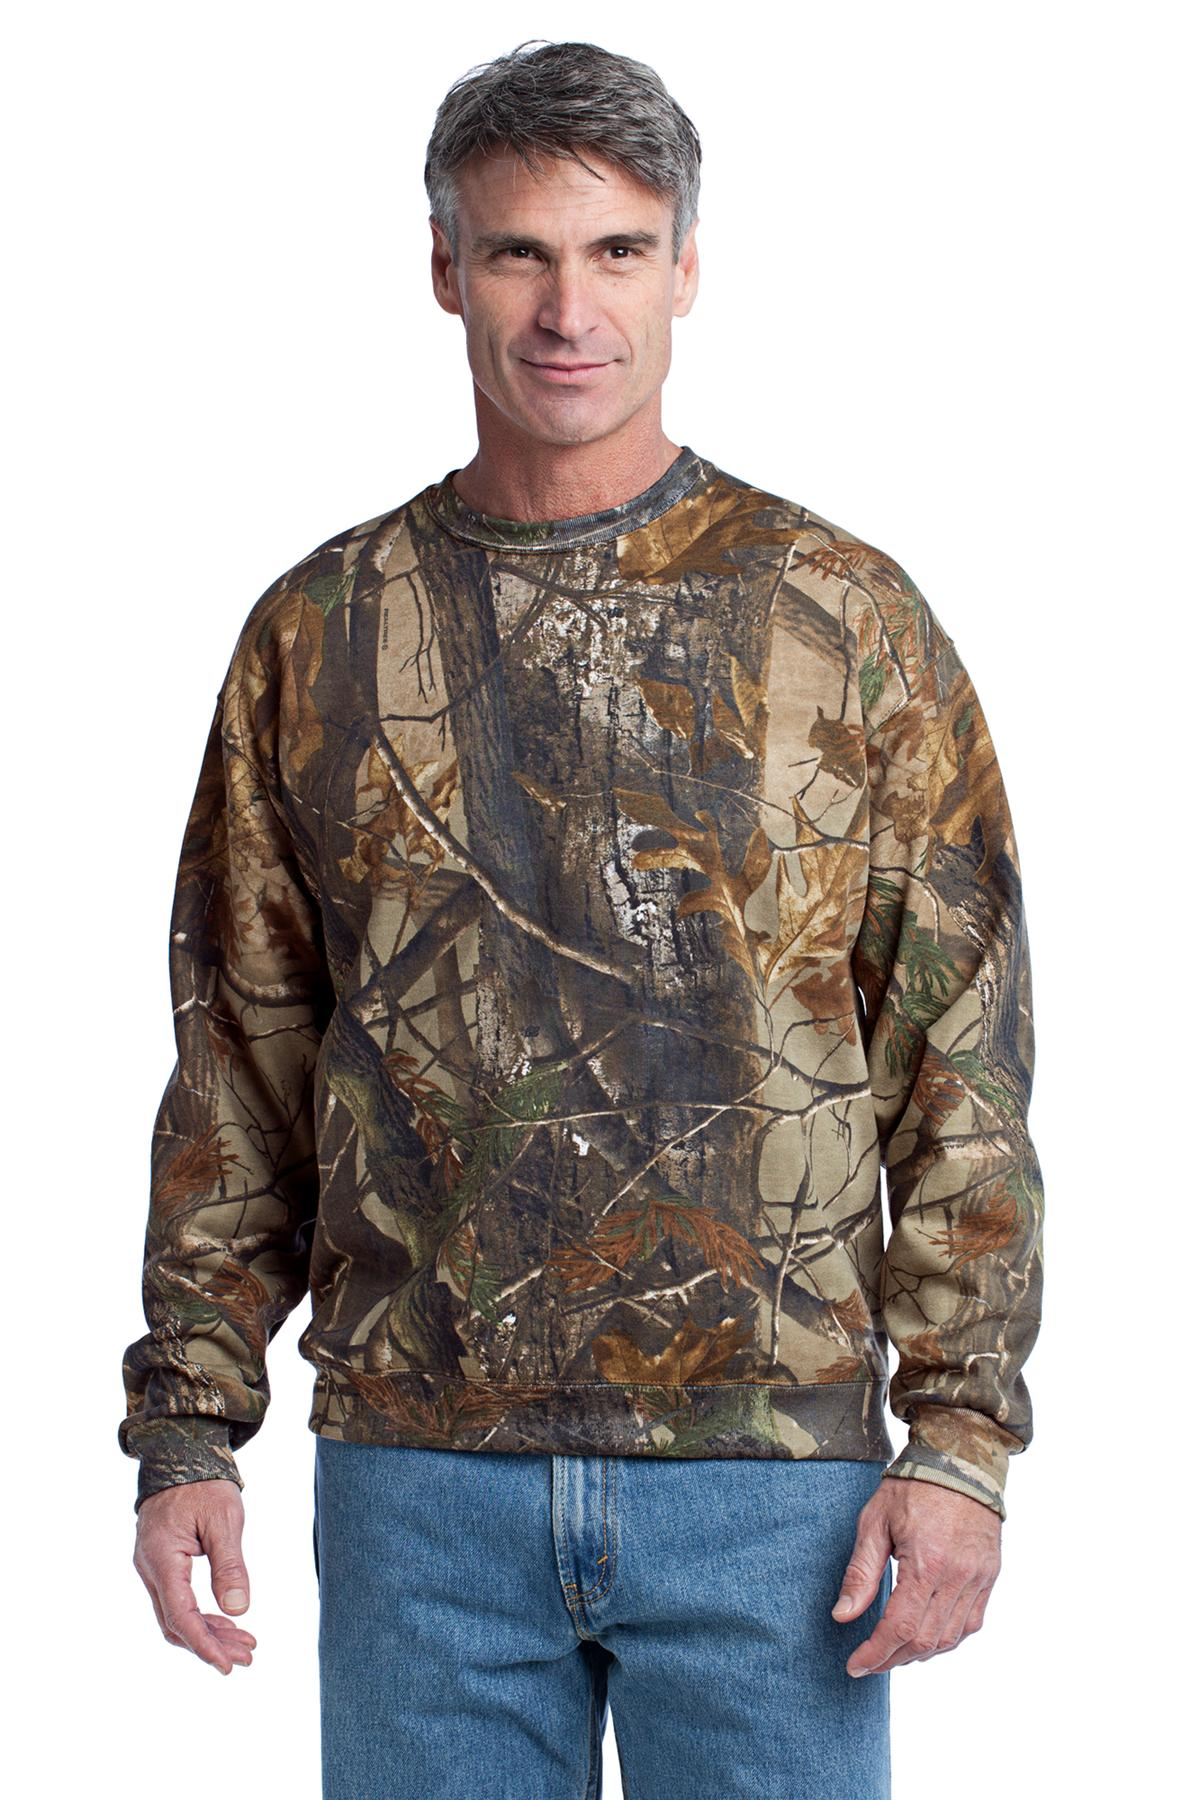 DISCONTINUED Russell Outdoors Realtree Crewneck Sweatshirt. S188R